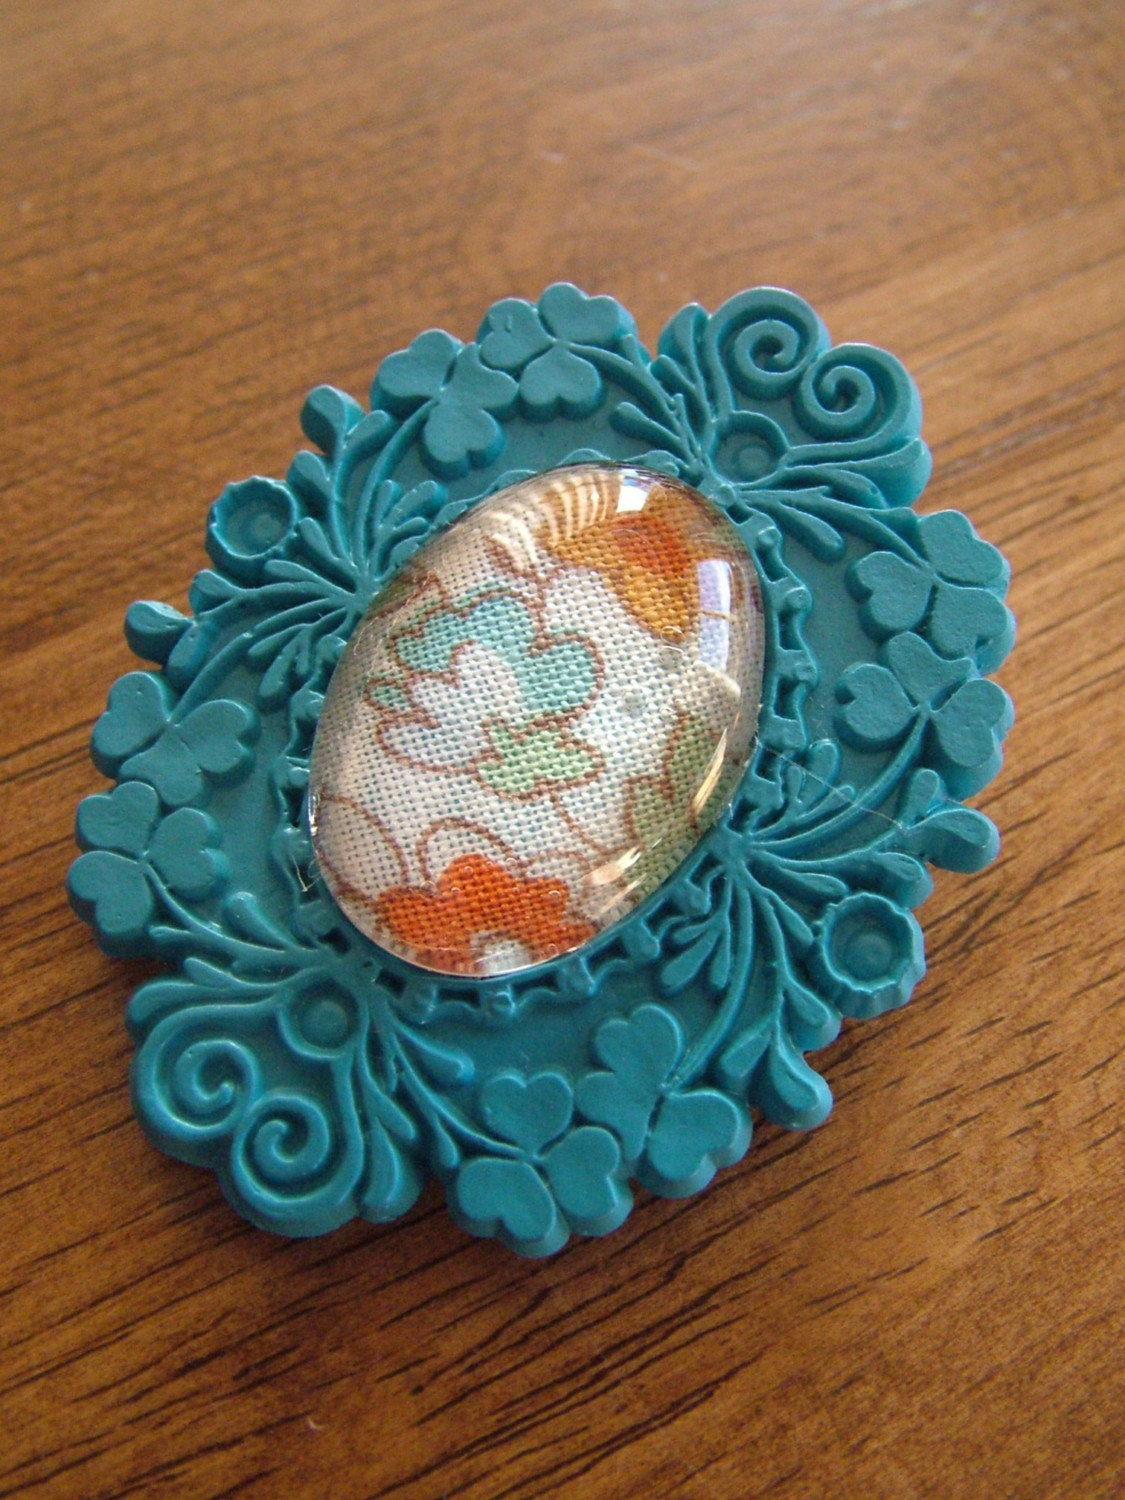 Turquoise Blue Resin and Floral Fabric Brooch/Pin